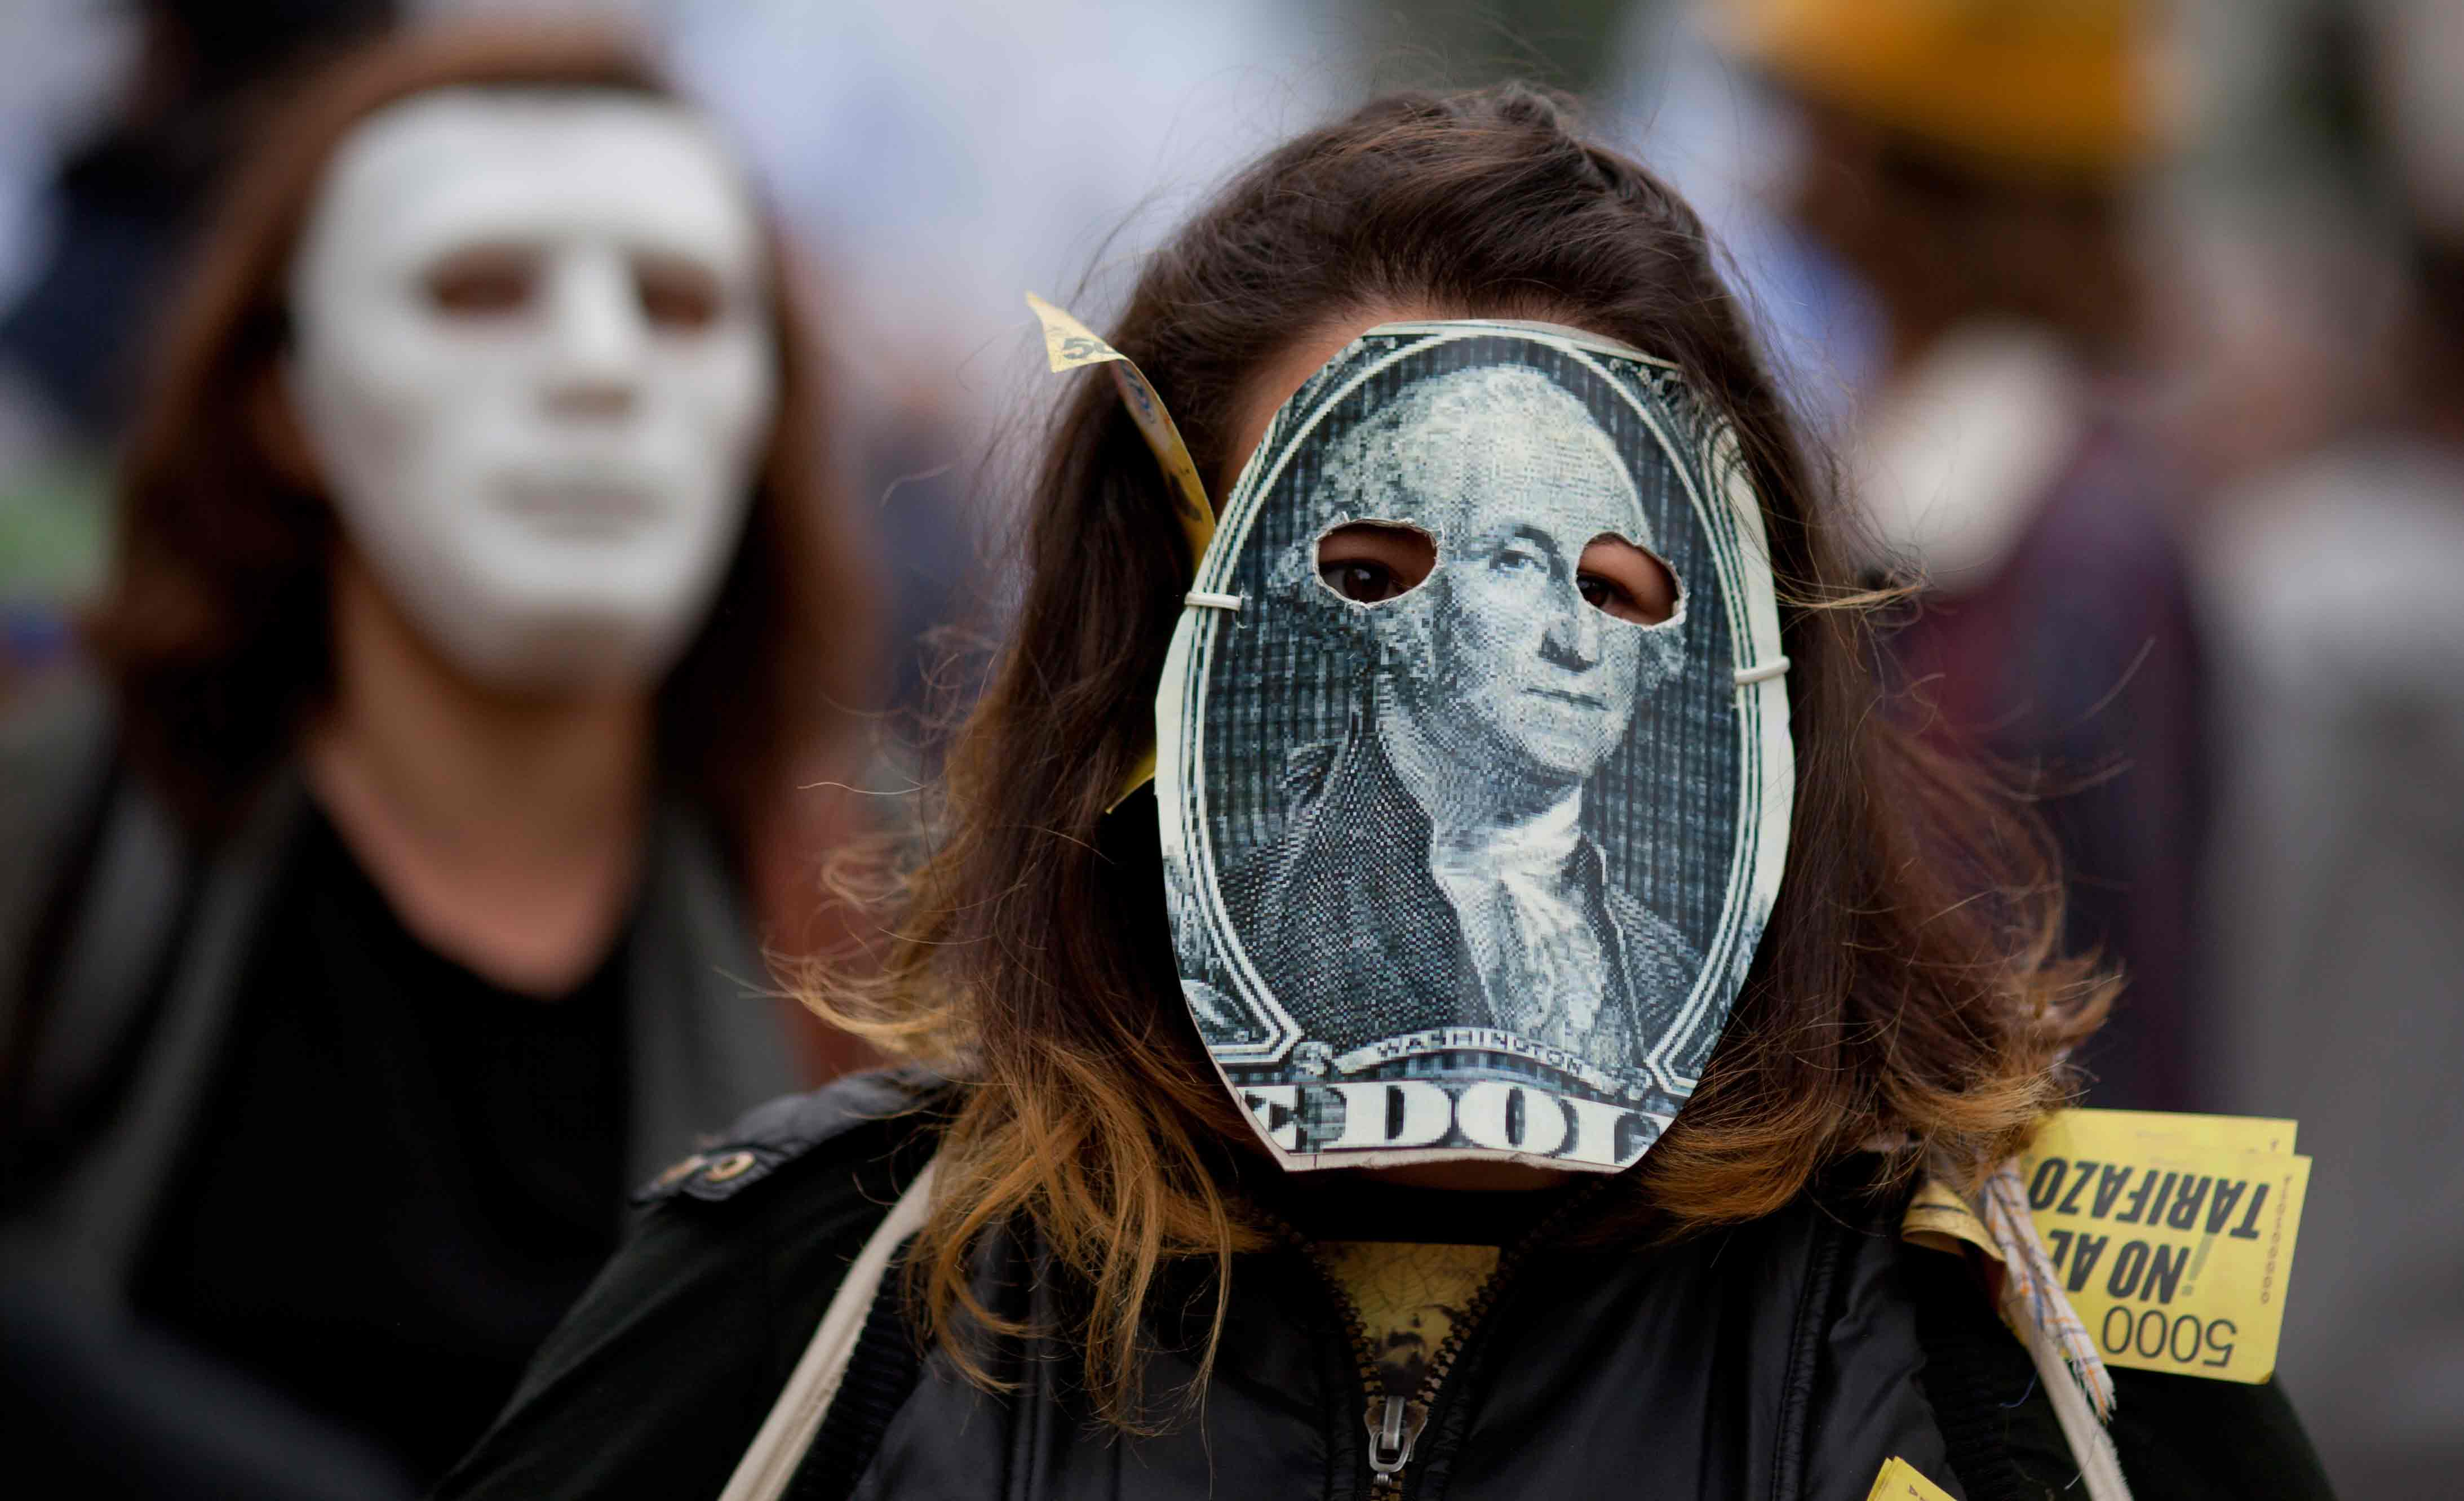 Protest Against IMF in Argentina